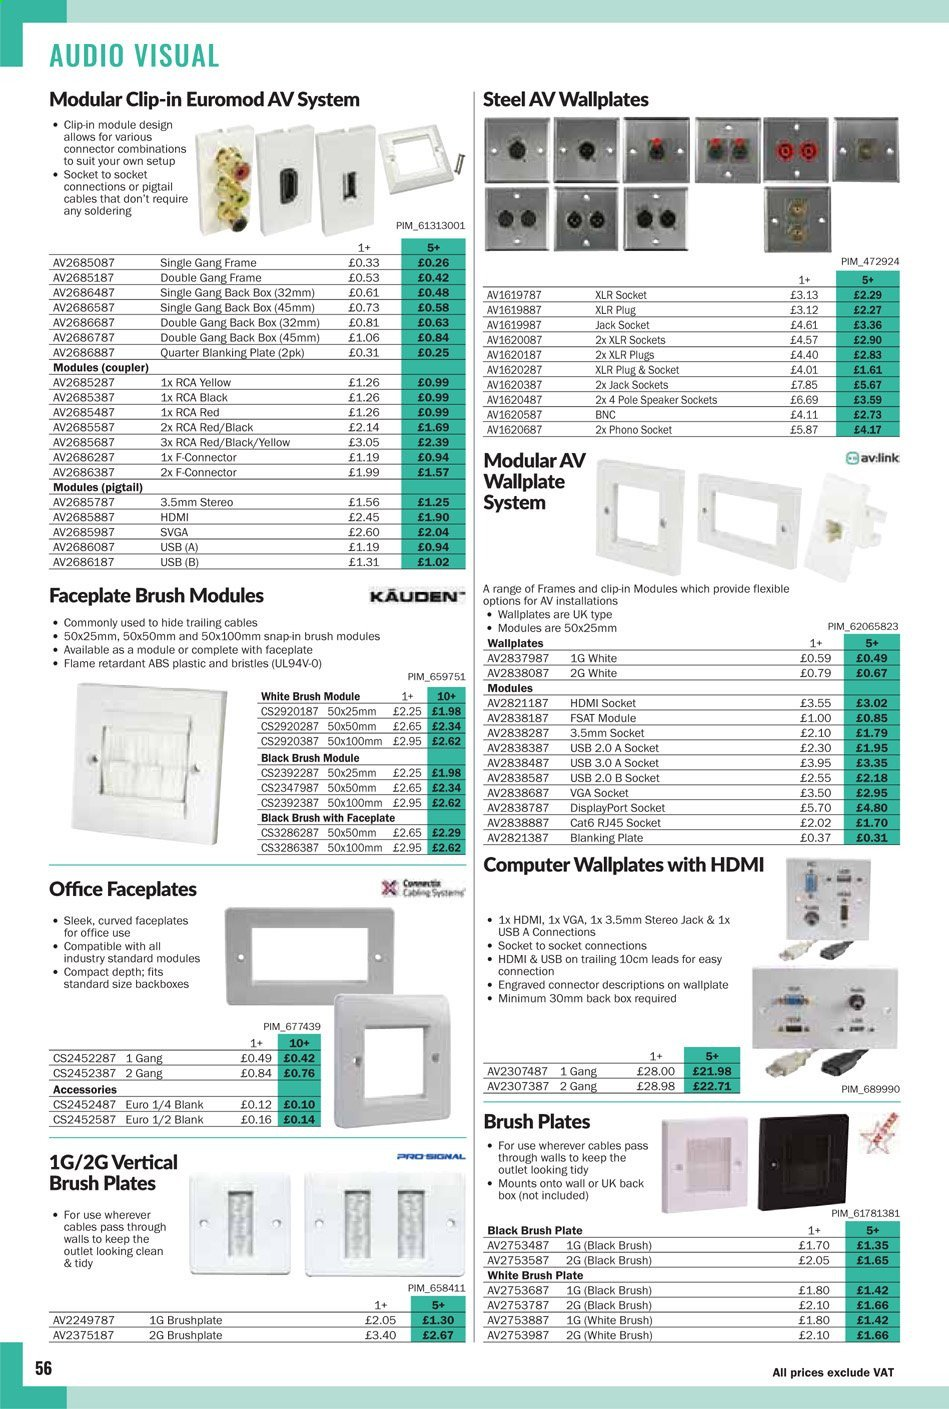 Rca Wall Plate Rj45 Connector Wiring Diagram | Wiring Liry Jack Usb Wiring Diagram on